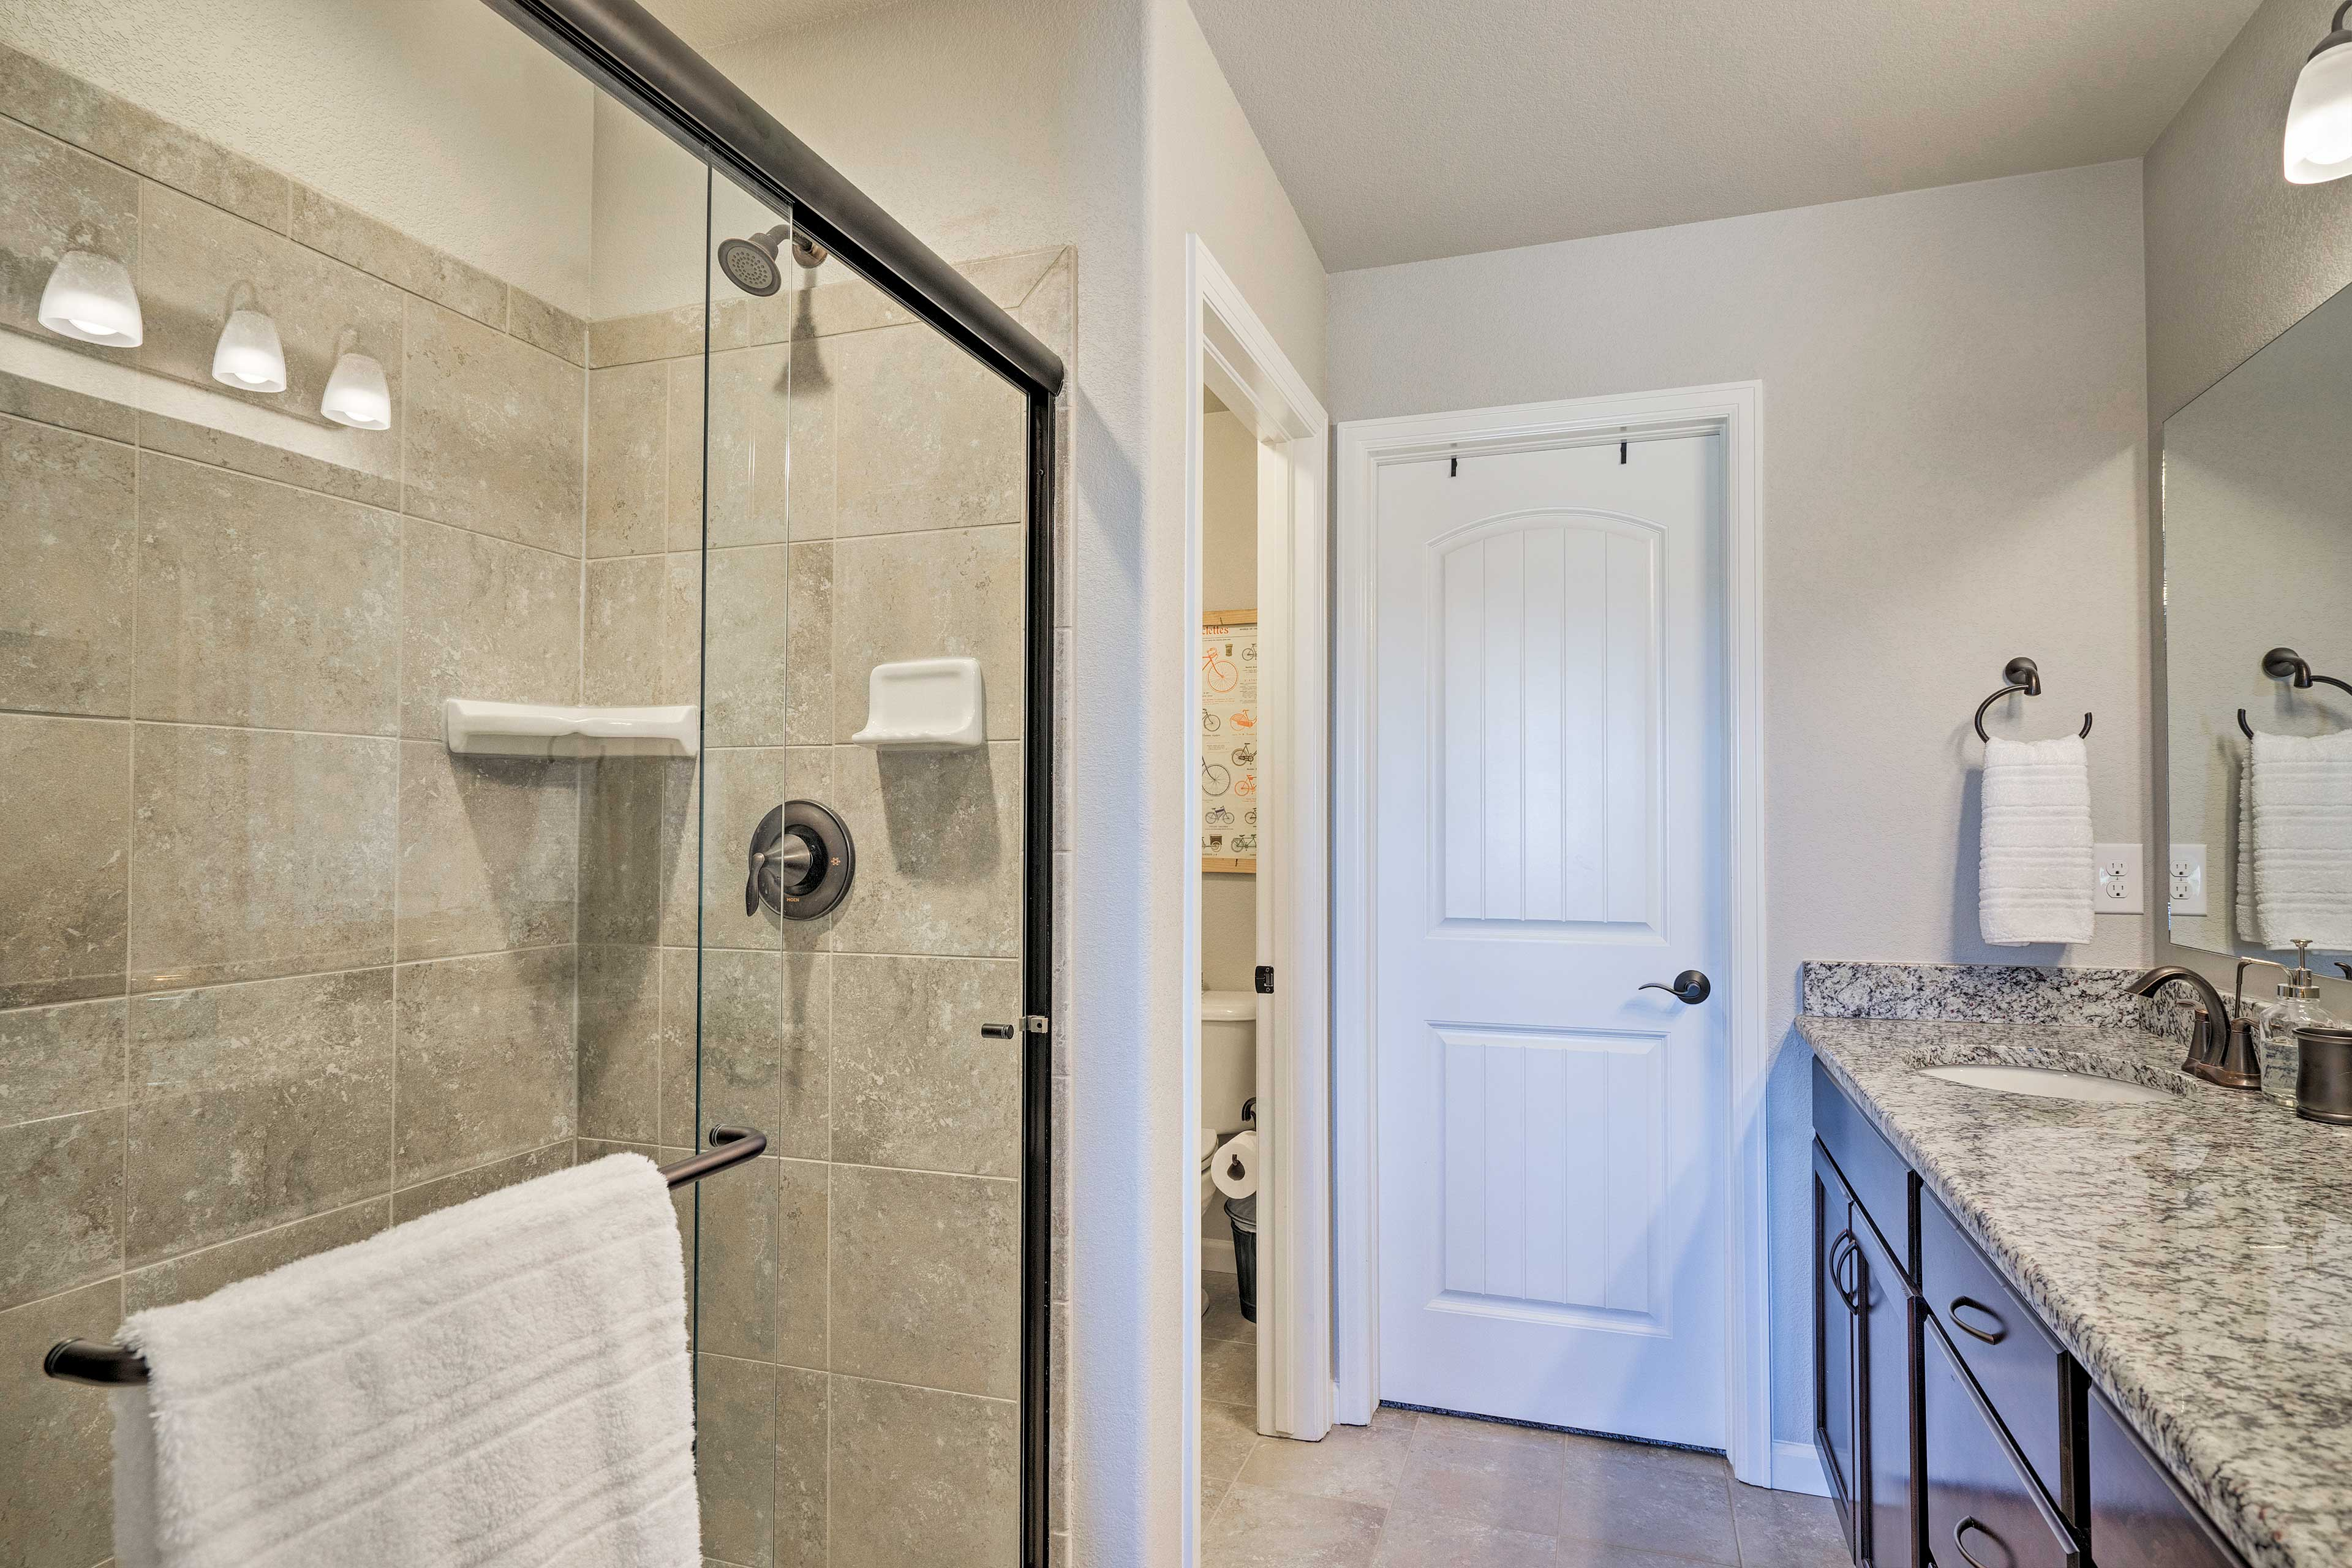 After a day of hiking, rinse off in this spacious glass-door shower!